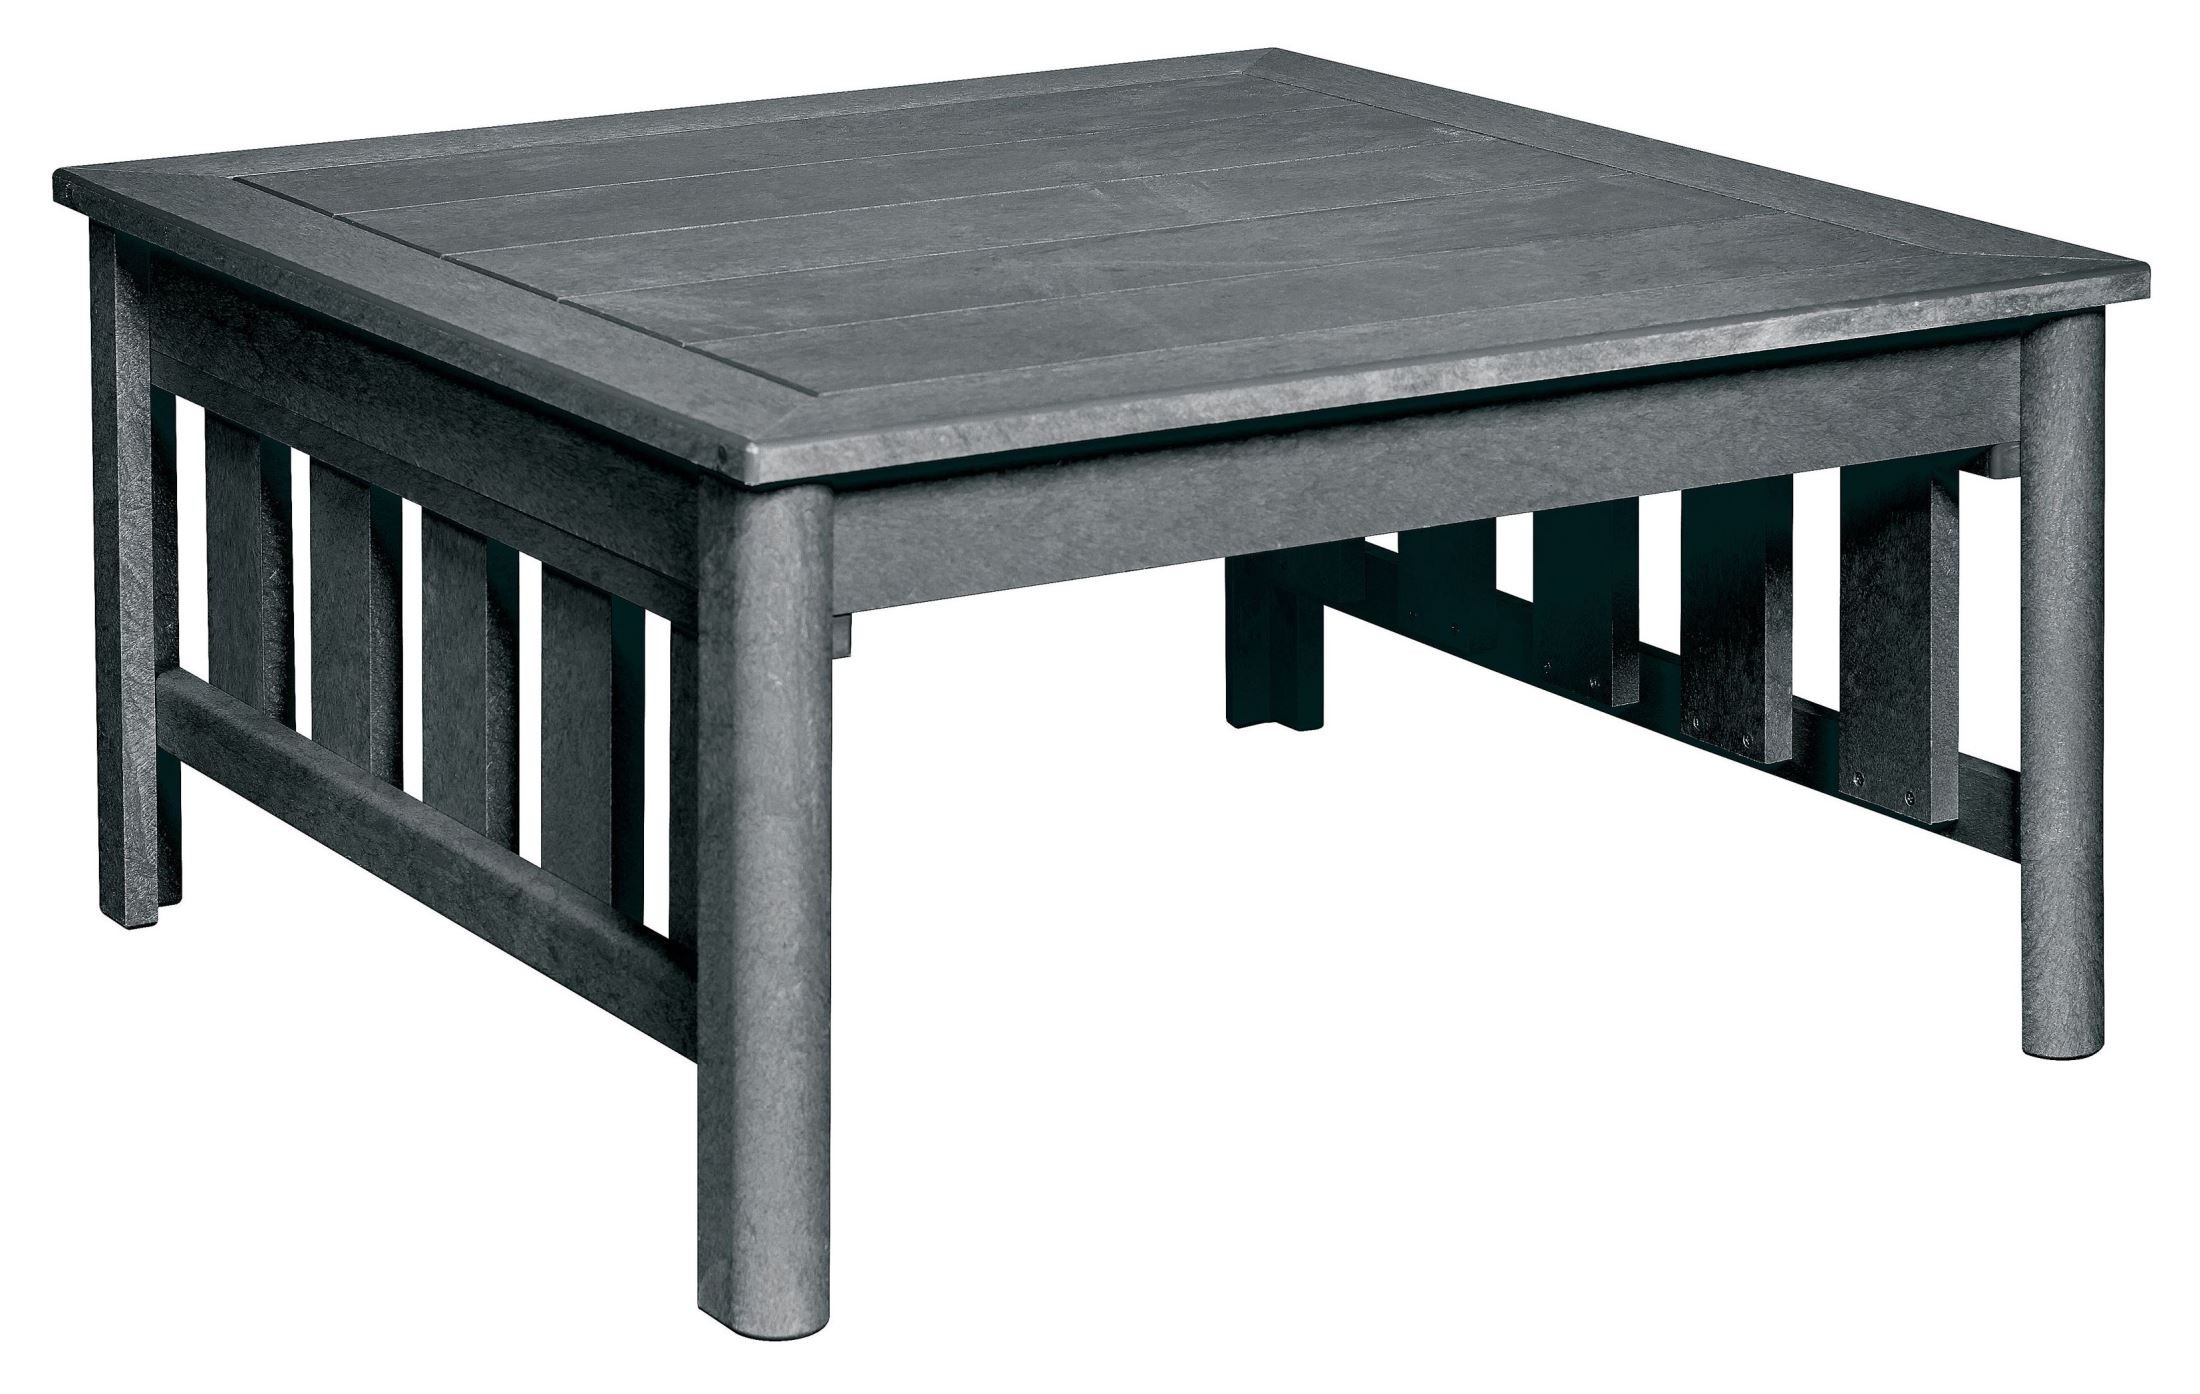 Stratford Slate Gray Square Cocktail Table From Cr Plastic Dst150 18 Coleman Furniture